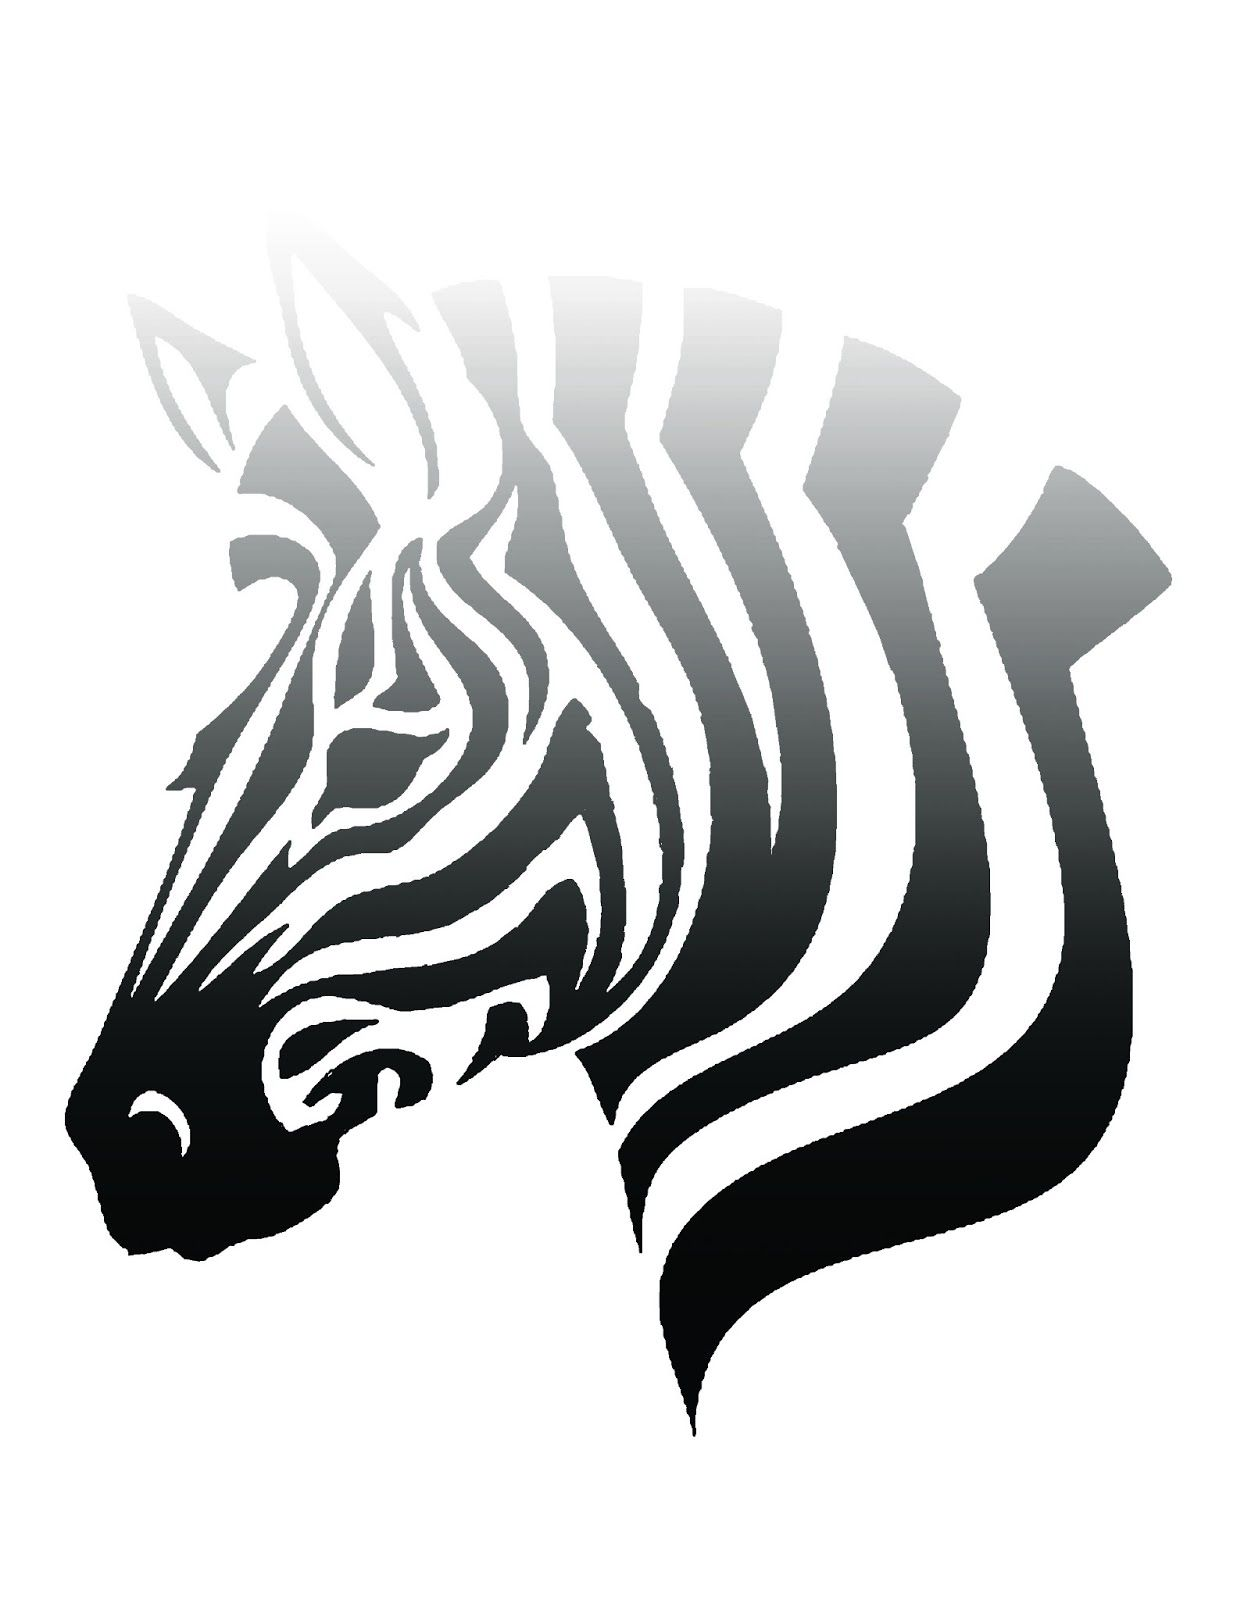 Free Printable Ombre Zebra Poster Click For Link To Blog